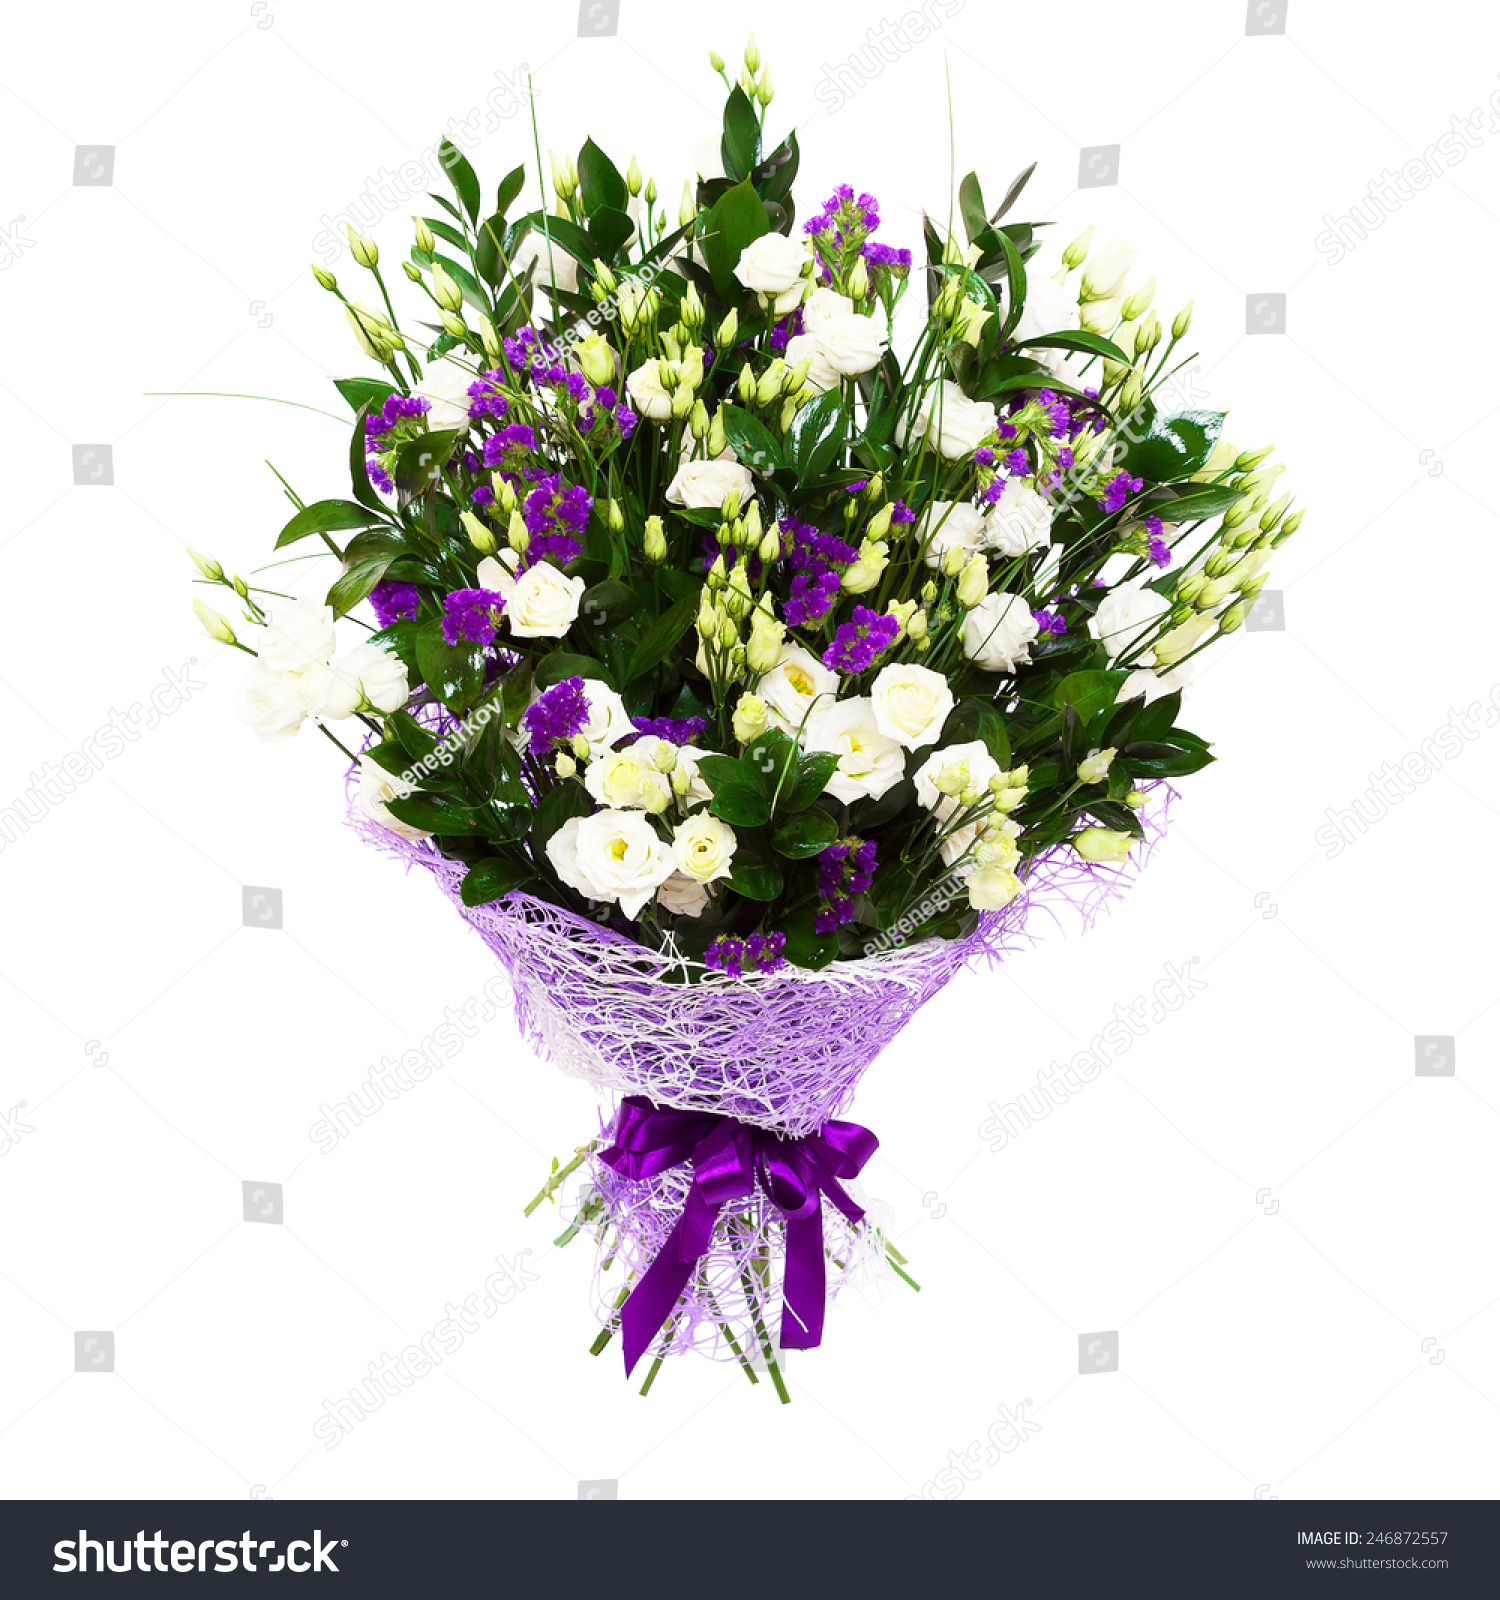 Gorgeous large bouquet white roses purple stock photo edit now gorgeous large bouquet of white roses and purple flowers mightylinksfo